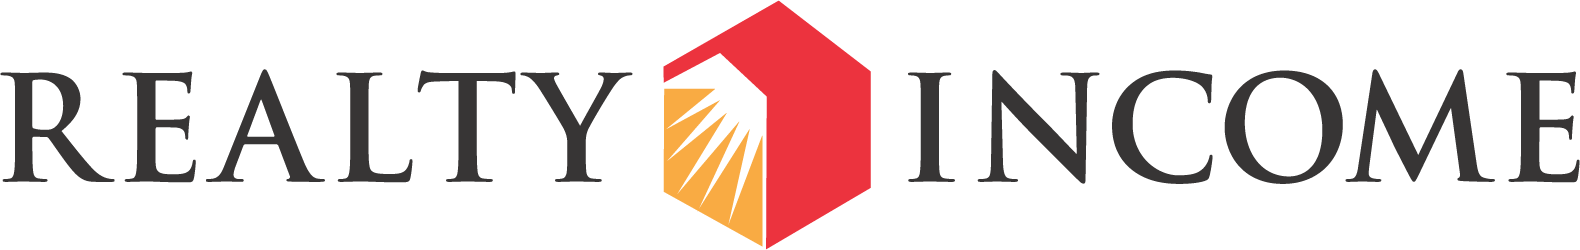 Realty Income Logo png